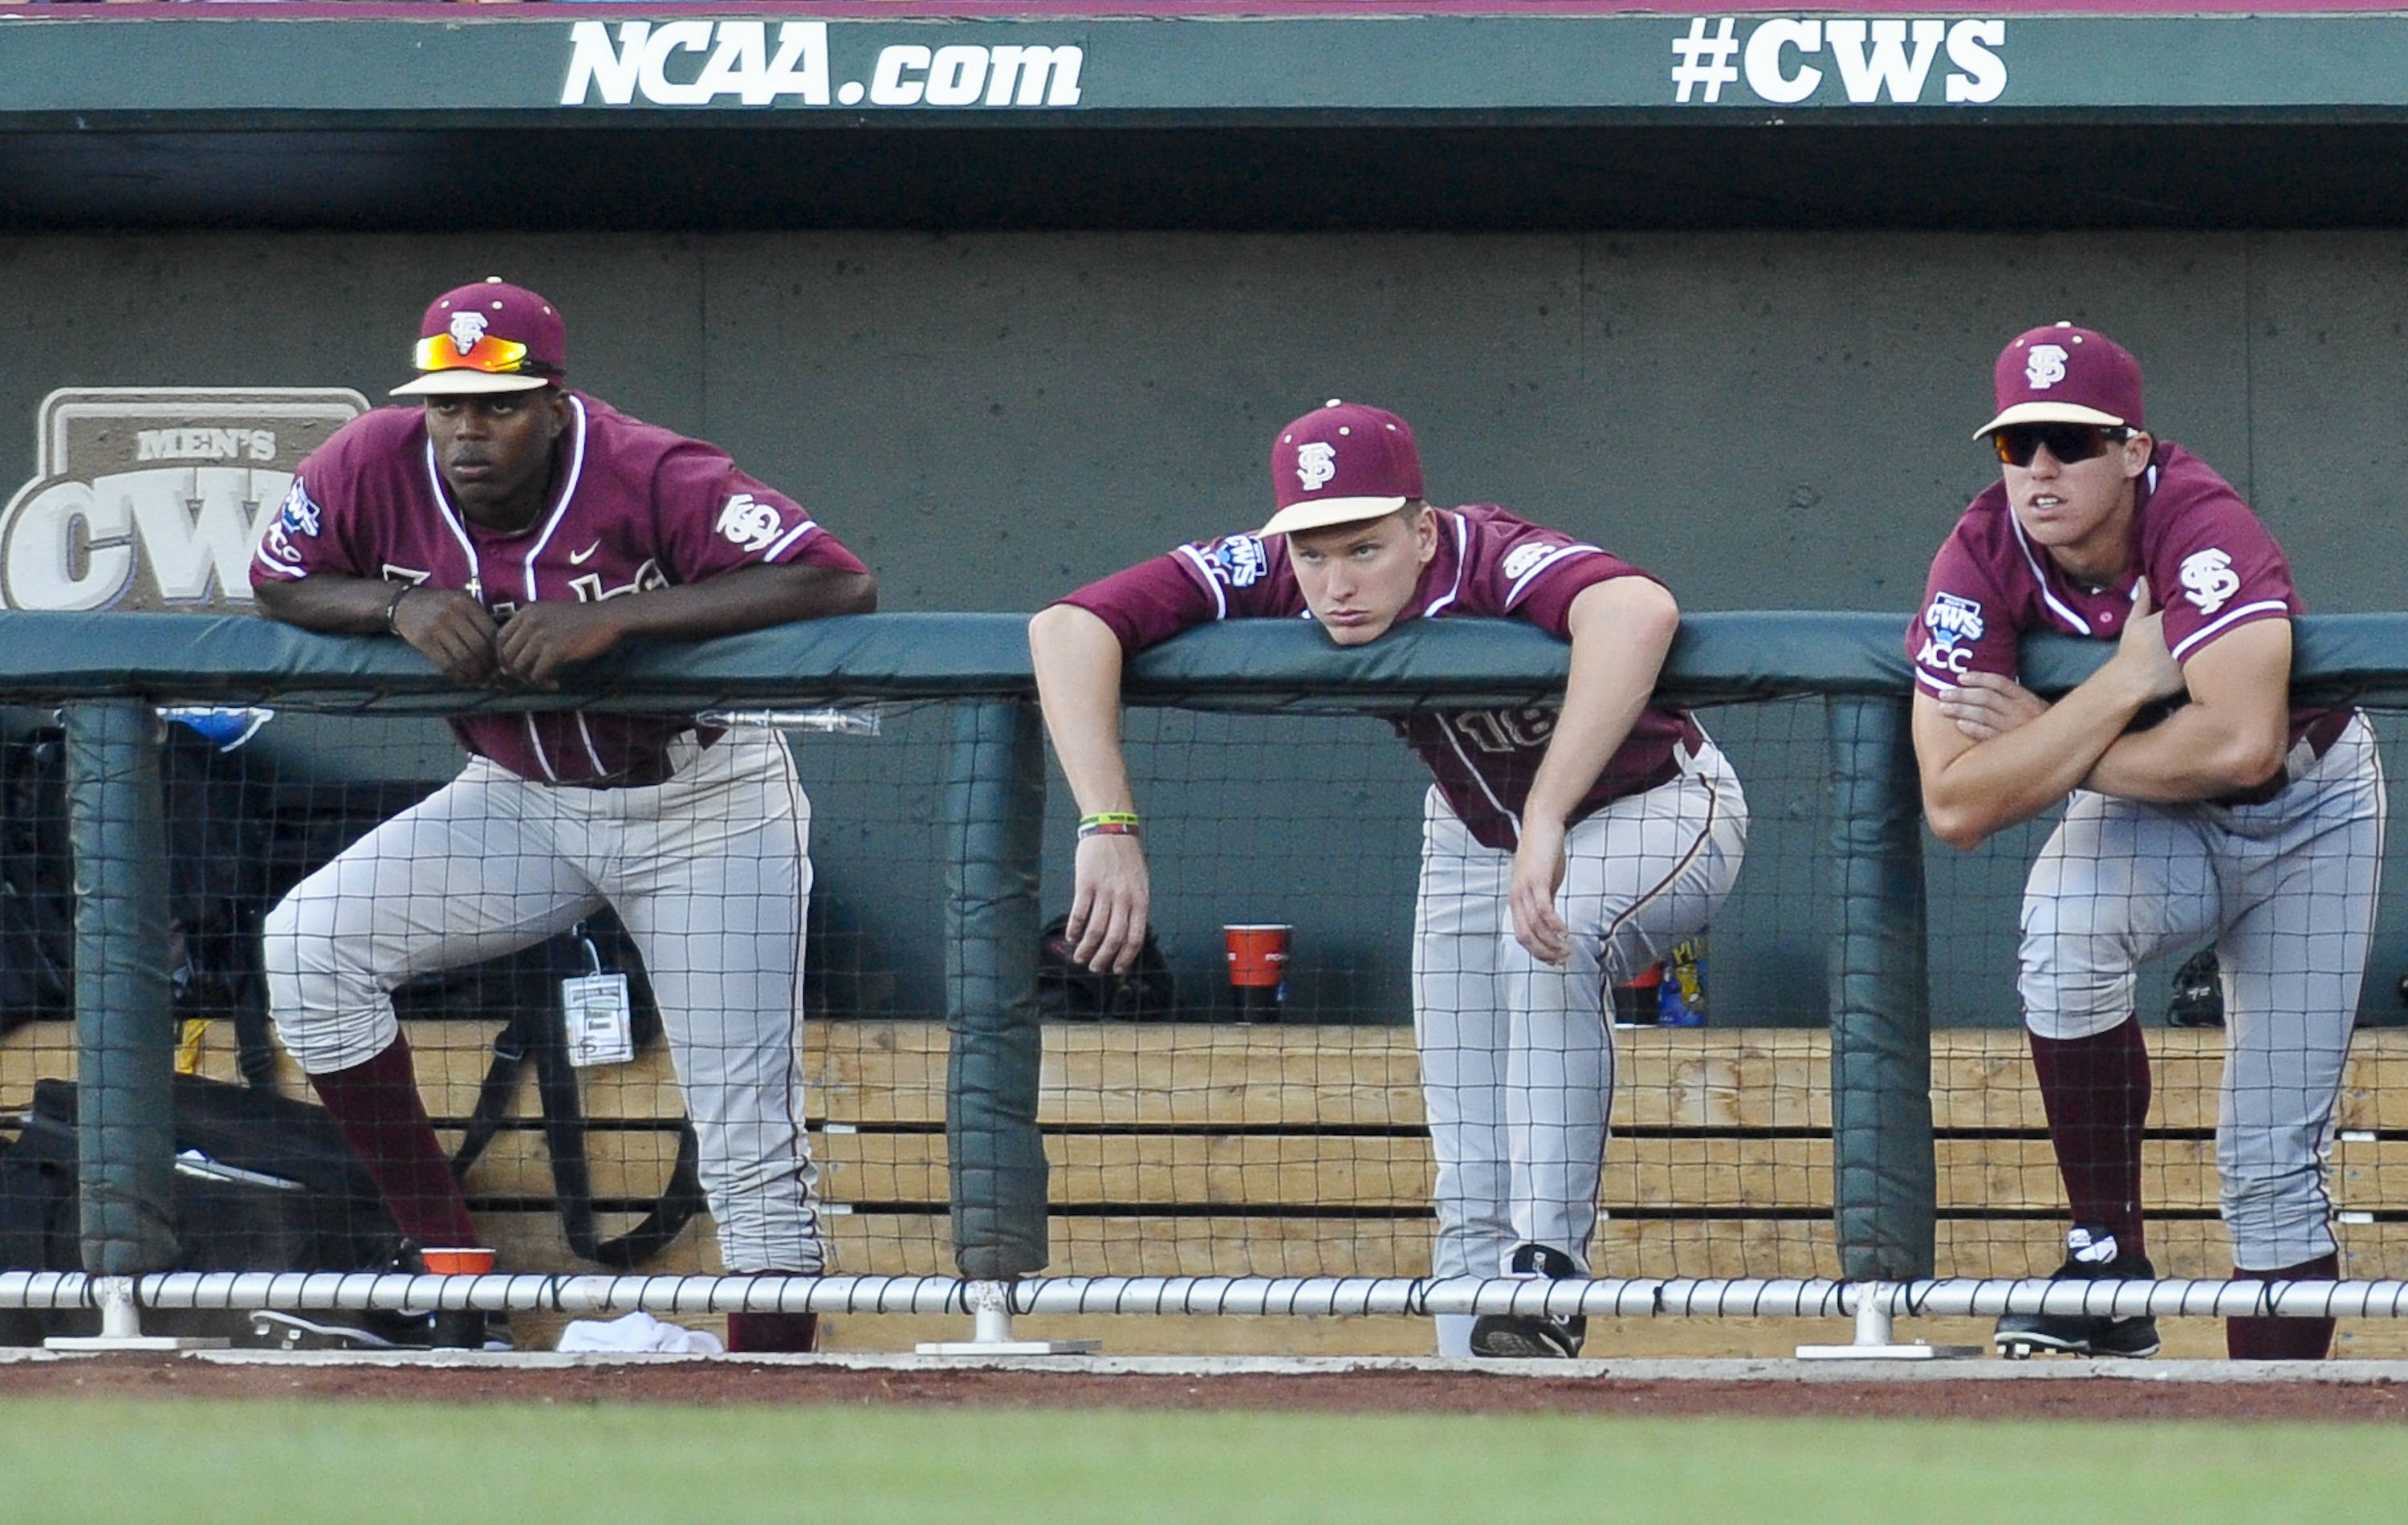 Florida State players, including Seth Miller, center, follow the eighth inning against Arizona. (AP Photo/Eric Francis)